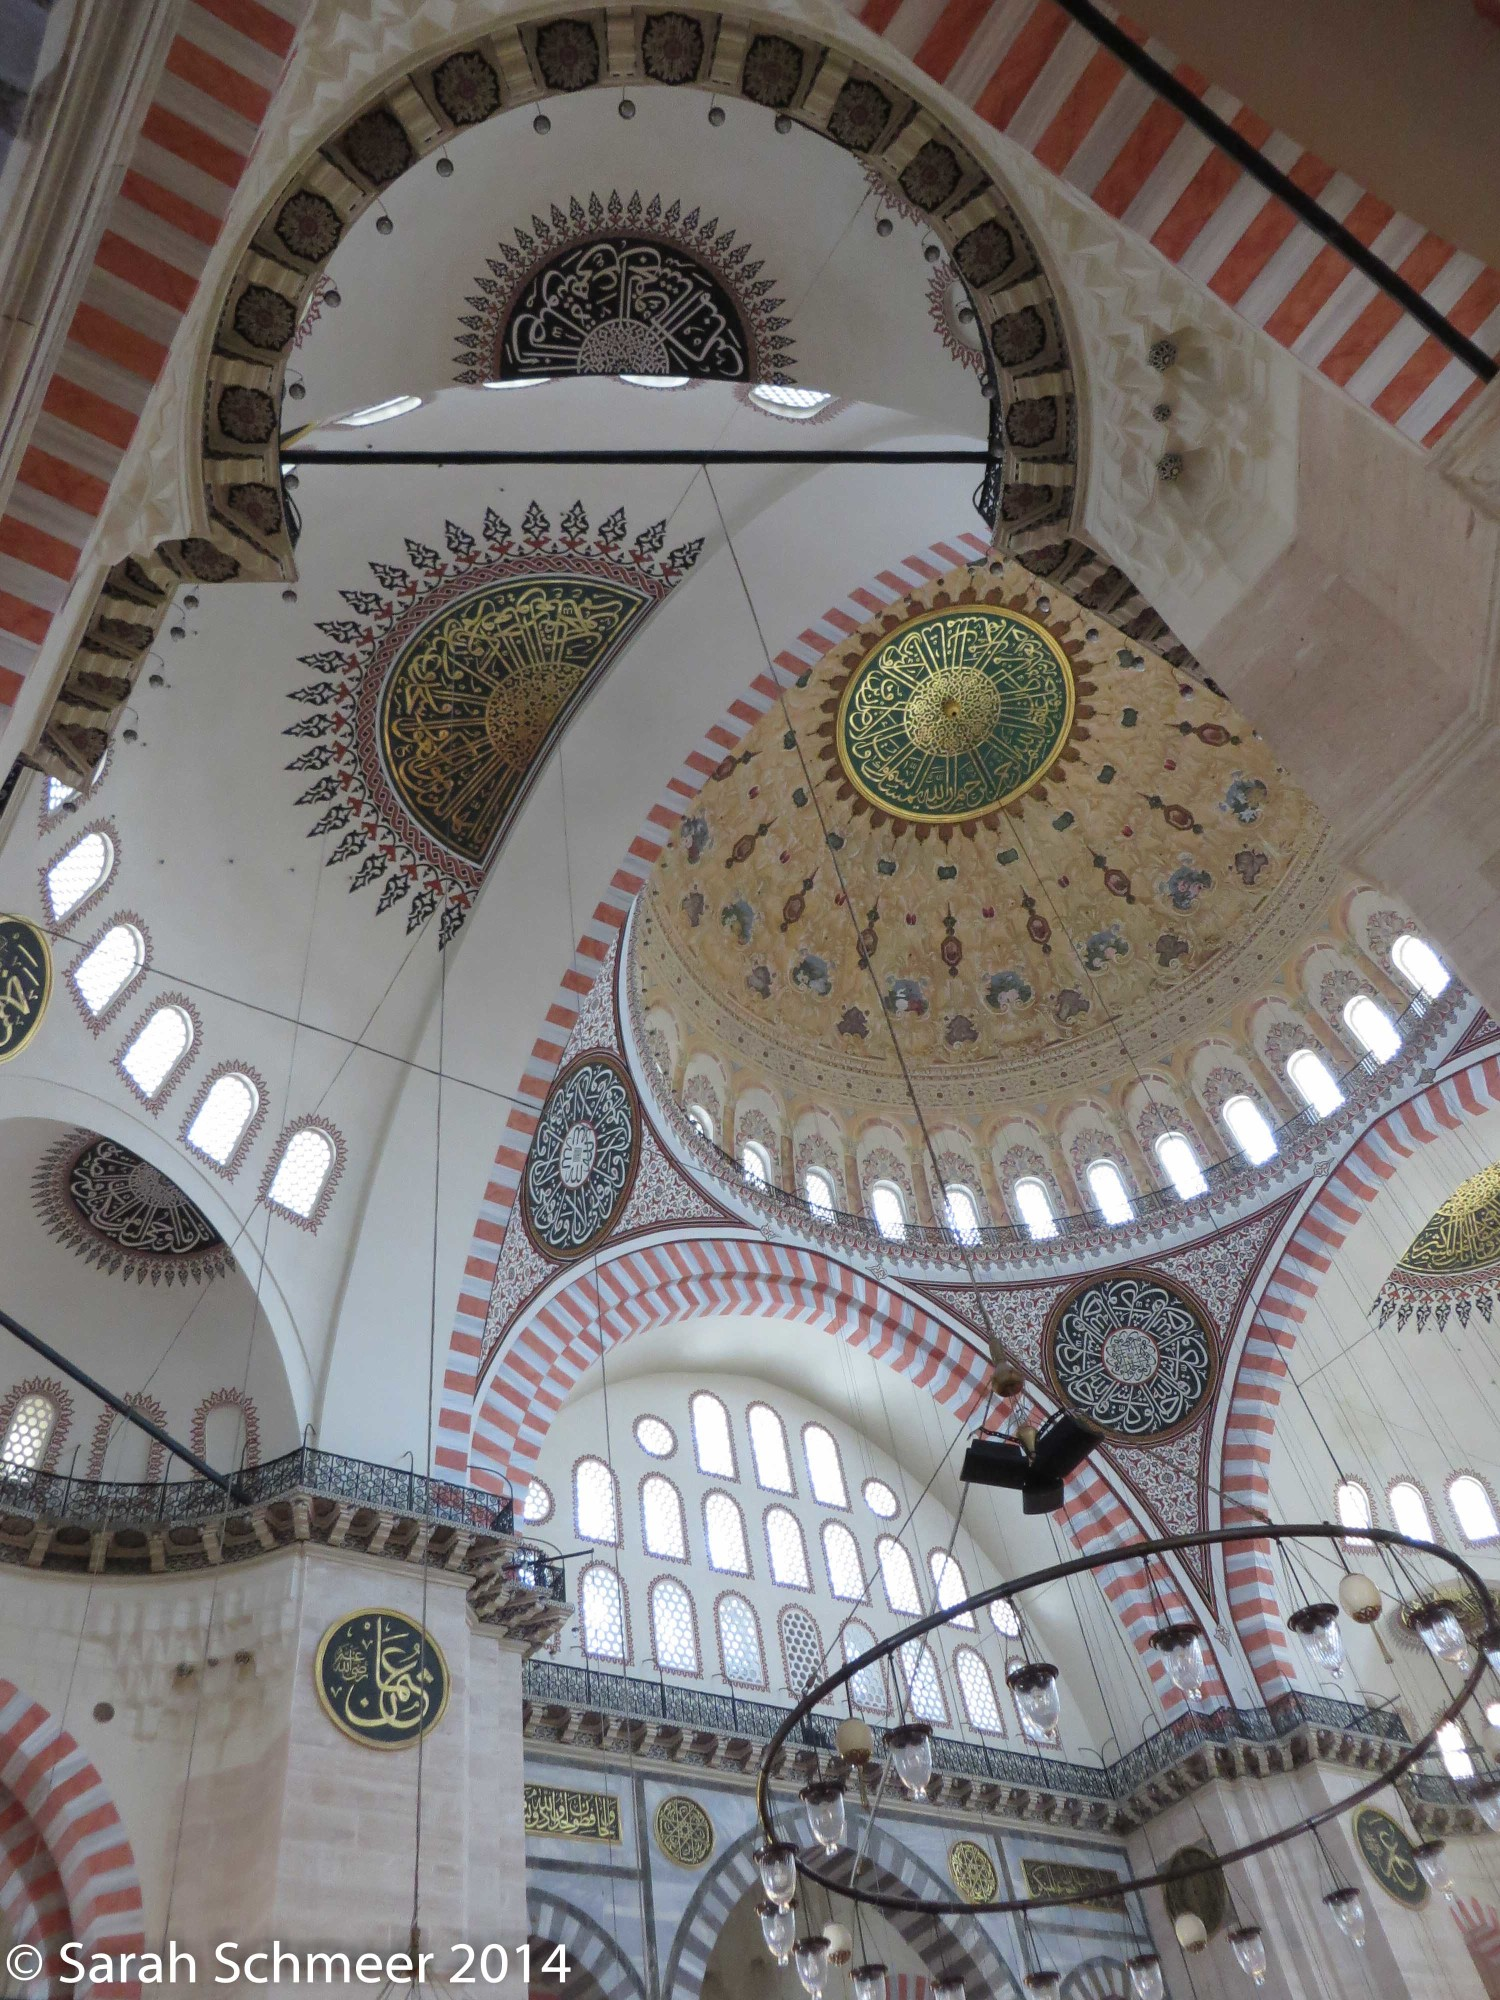 Ceiling of the Suleymaniye Mosque